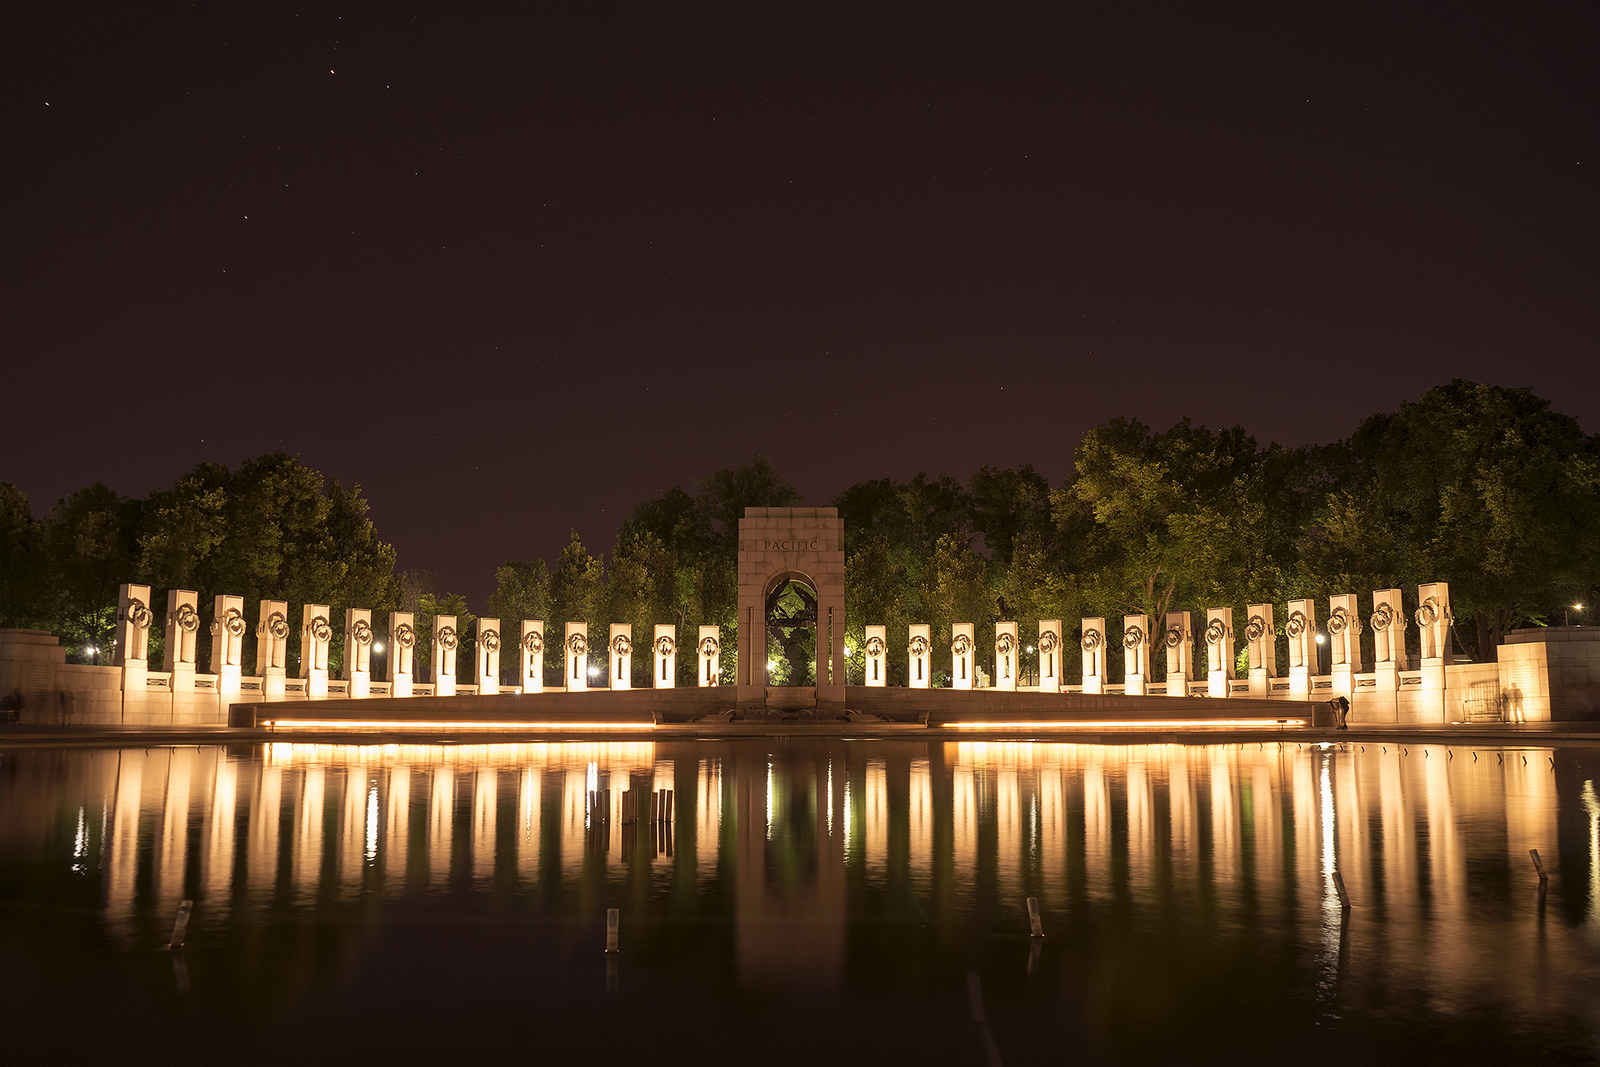 The WWII Memorial by Angela Pan